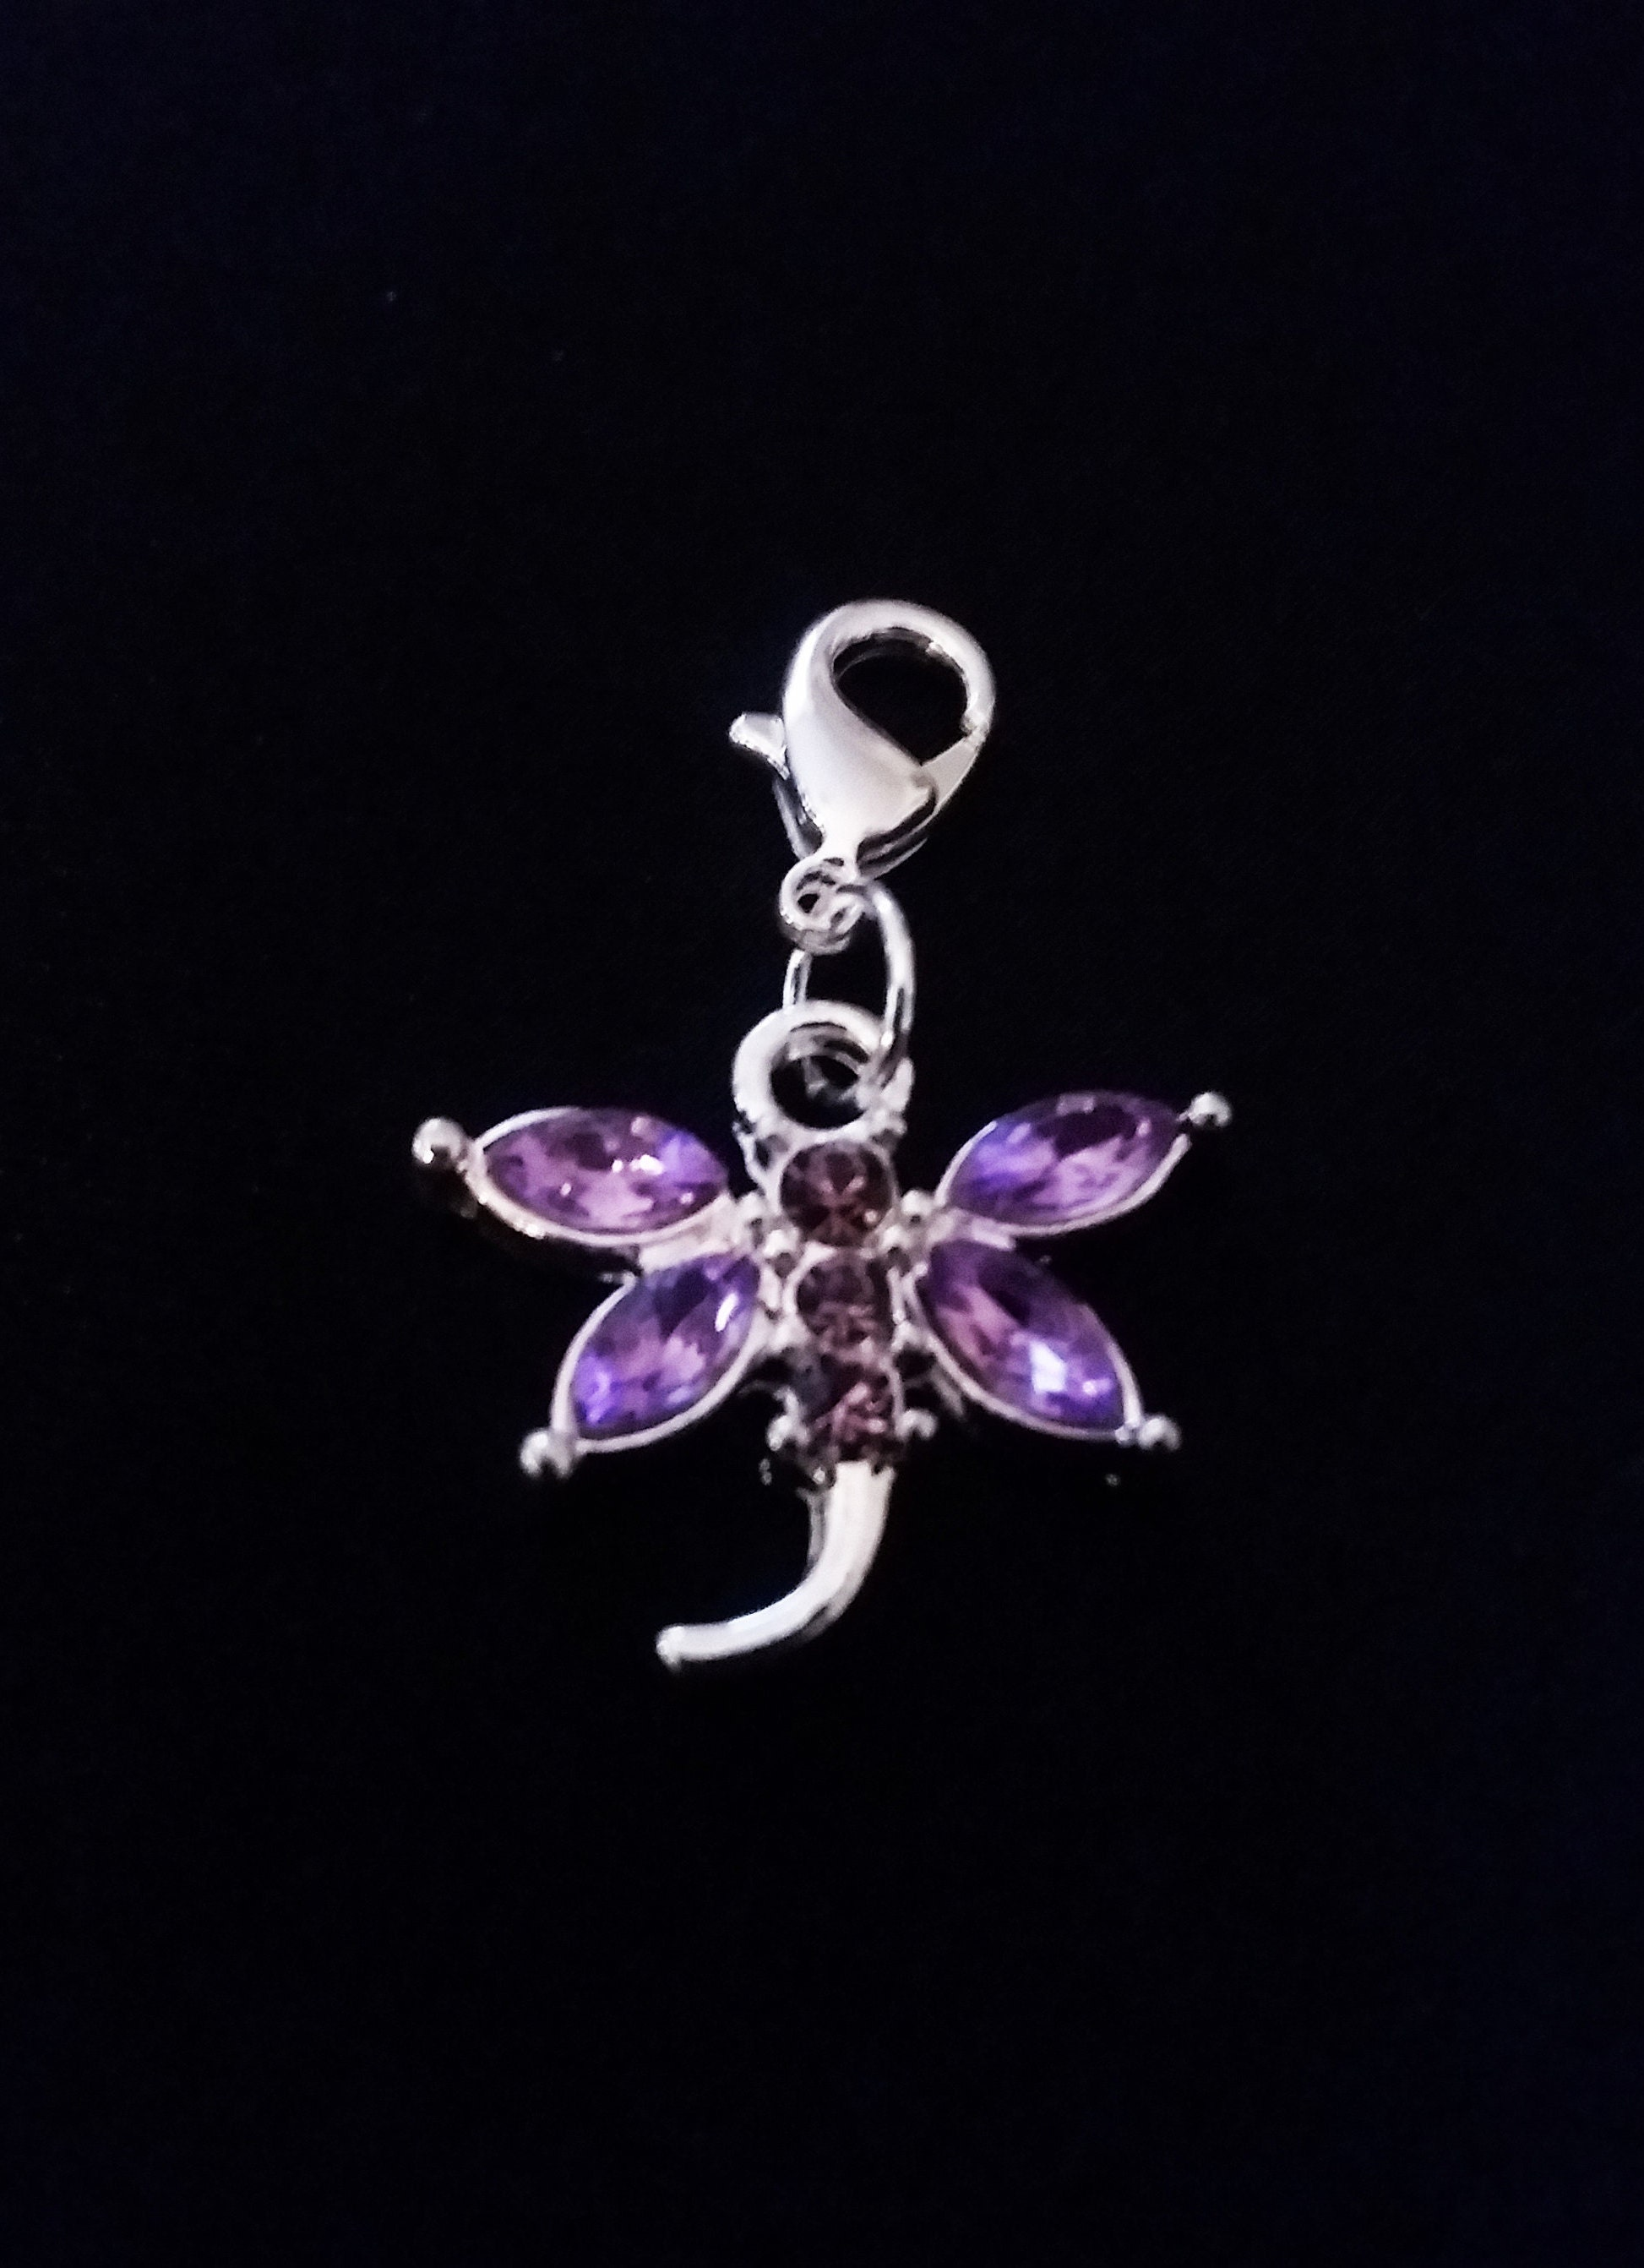 Antiqued Bracelet Pendant Zipper Pull Charm with Lobster Clasp Dragonfly